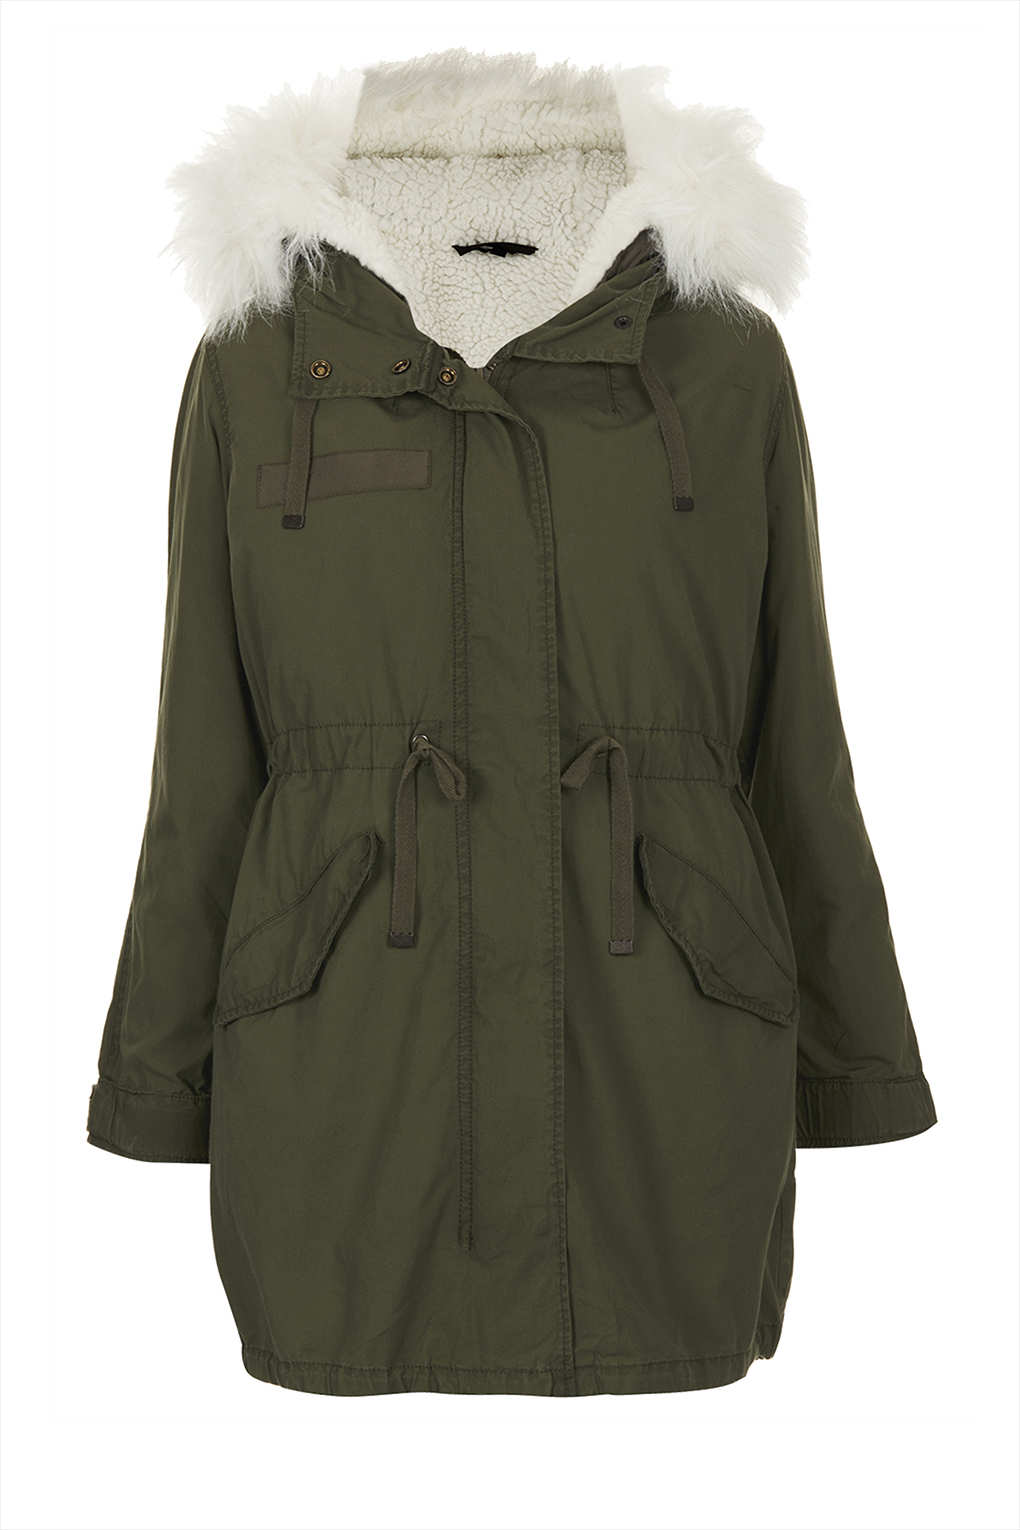 Topshop Petite Khaki Parka Coat in Natural | Lyst